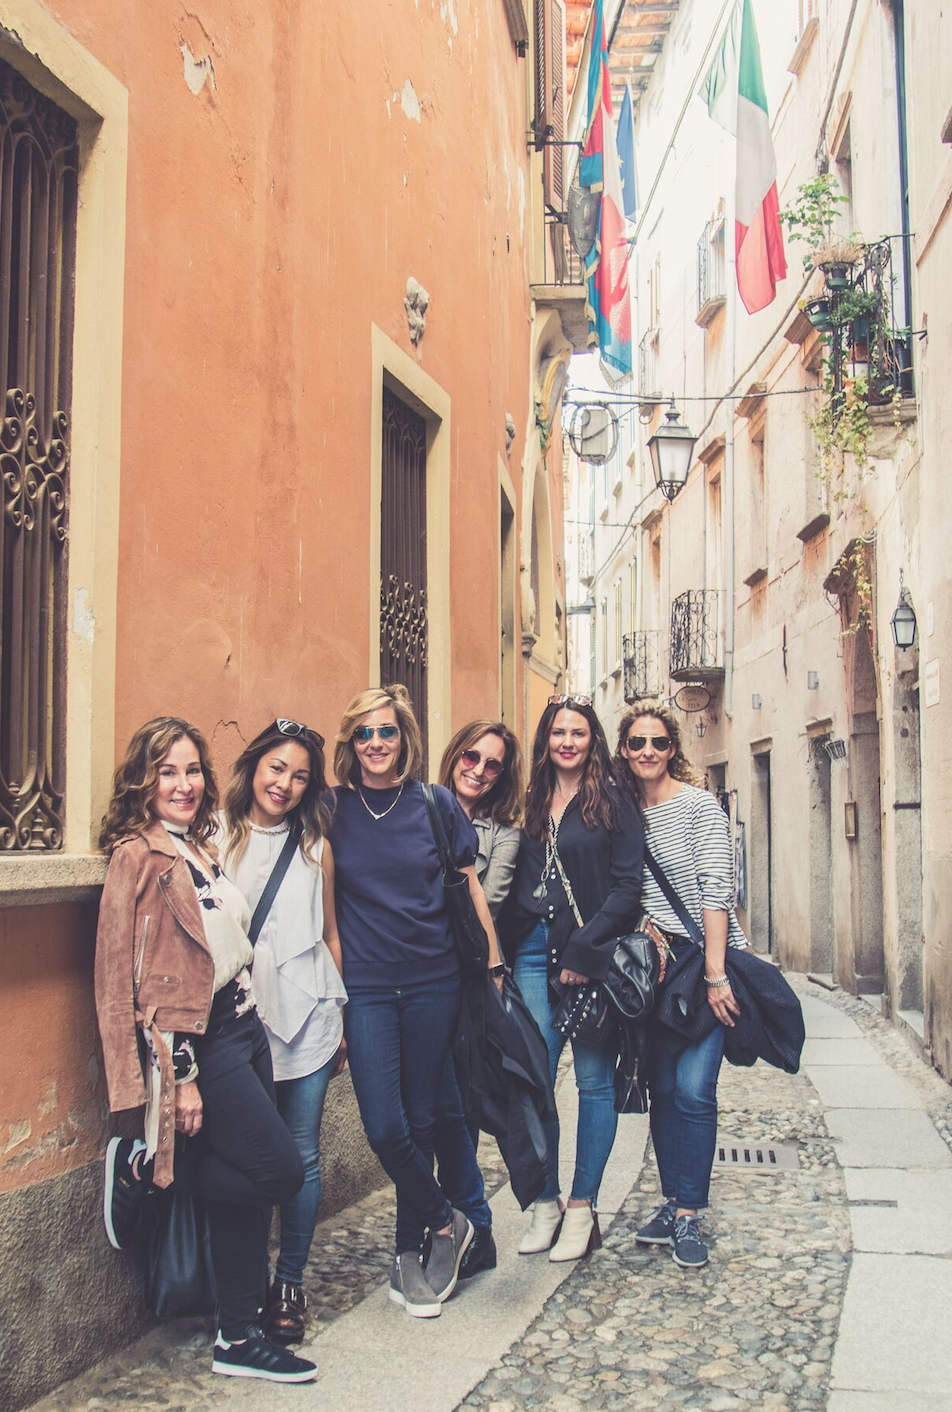 Visting the town of Orta in the Lake District. Left to right: Lori Gentile, Edel Legaspi, Ginna Christensen, MaryAnn Schicketanz, Kelly Hinchman and Dana Joy Altman